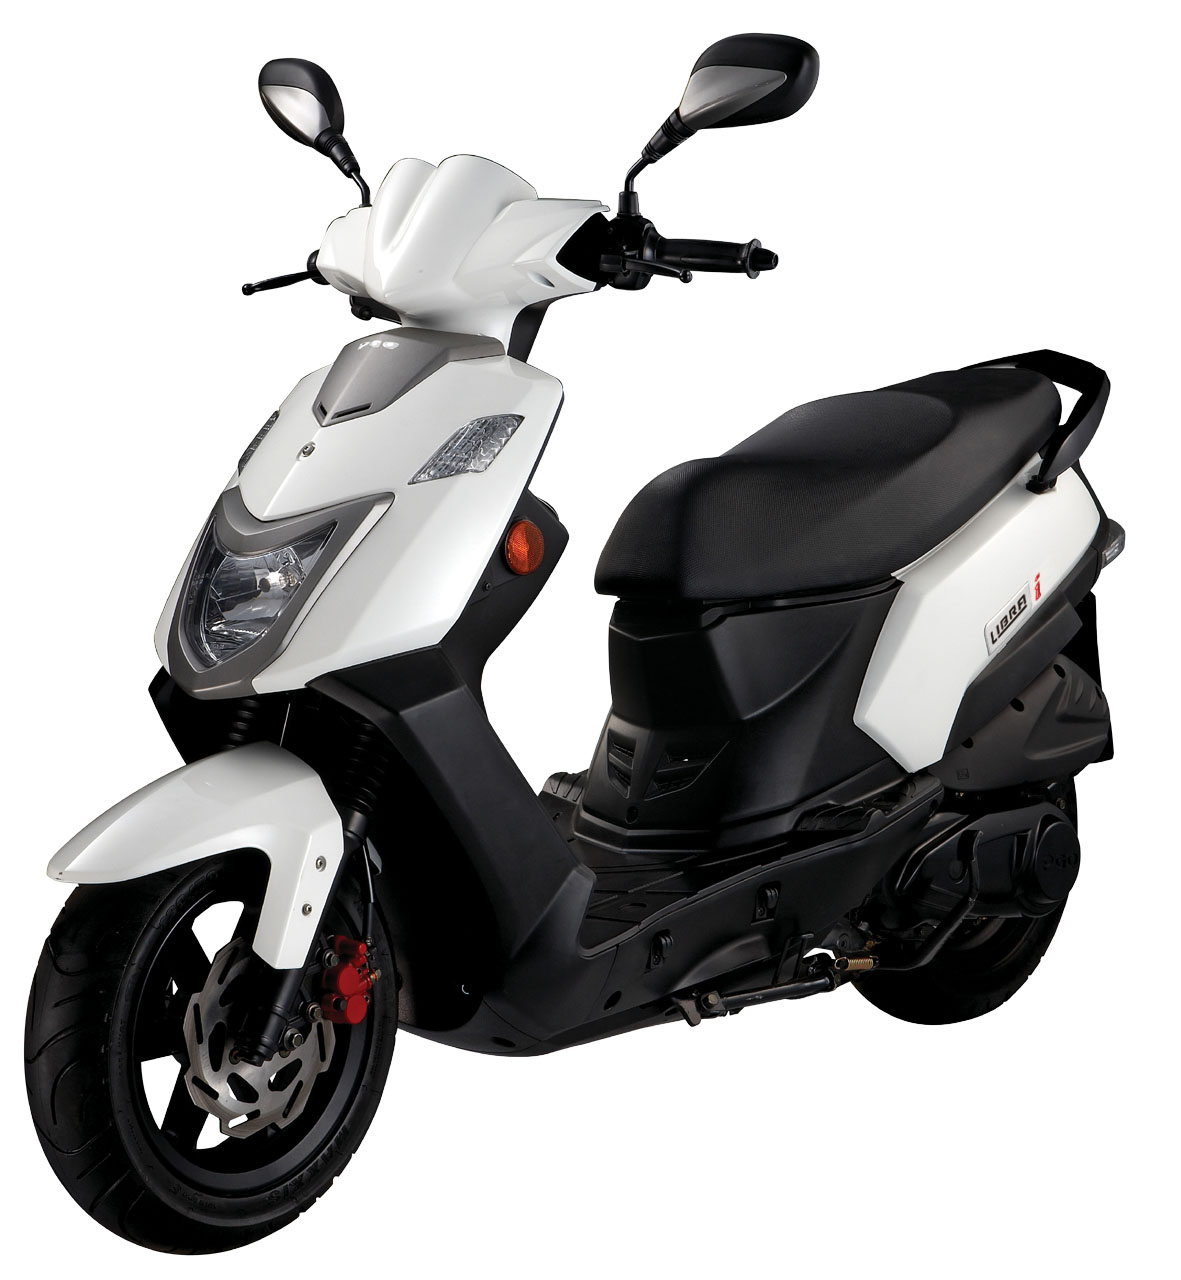 2011 PGO Scooters